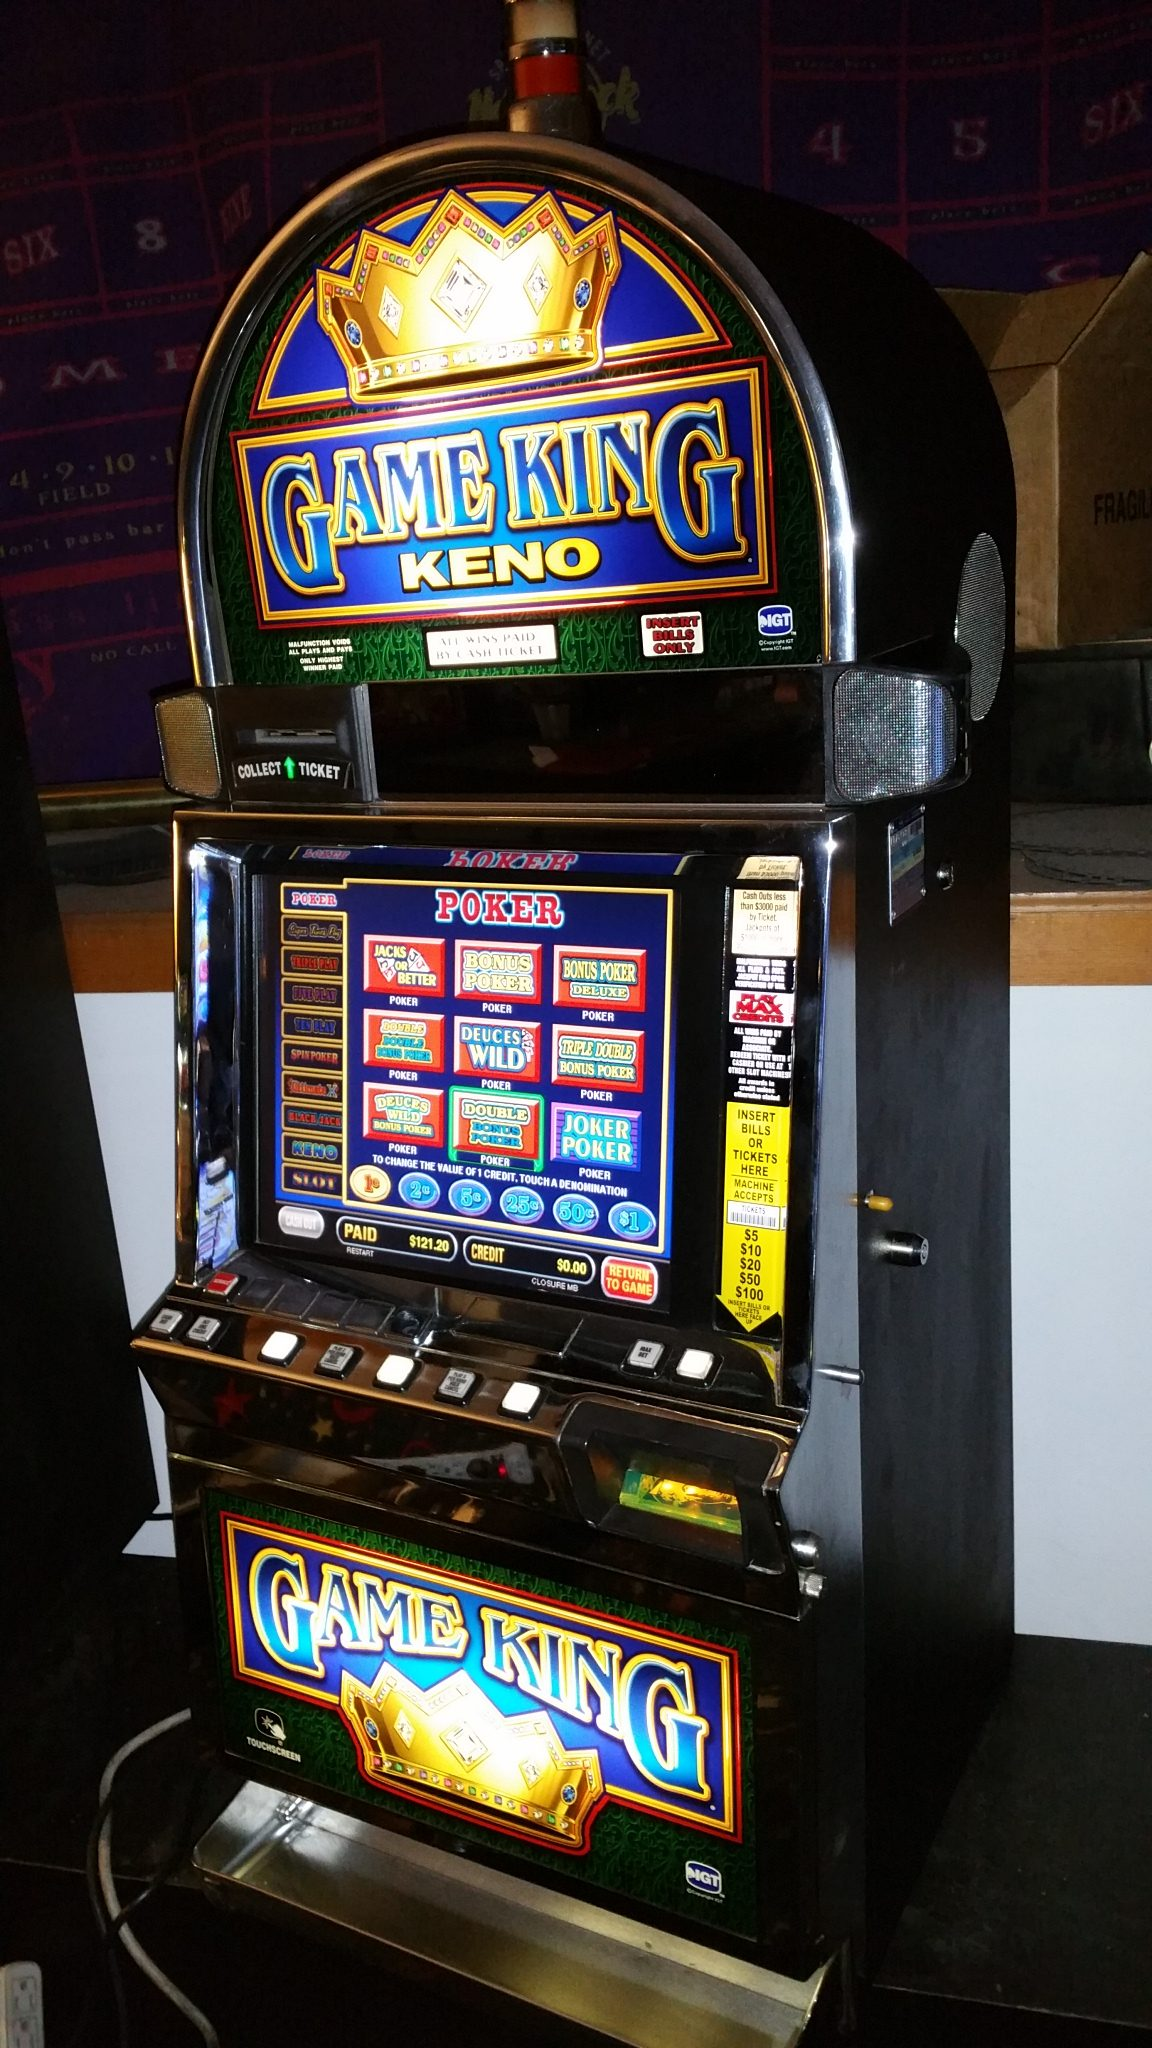 IGT Game King Multi-Game Video Poker 76 Games 17″ LCD